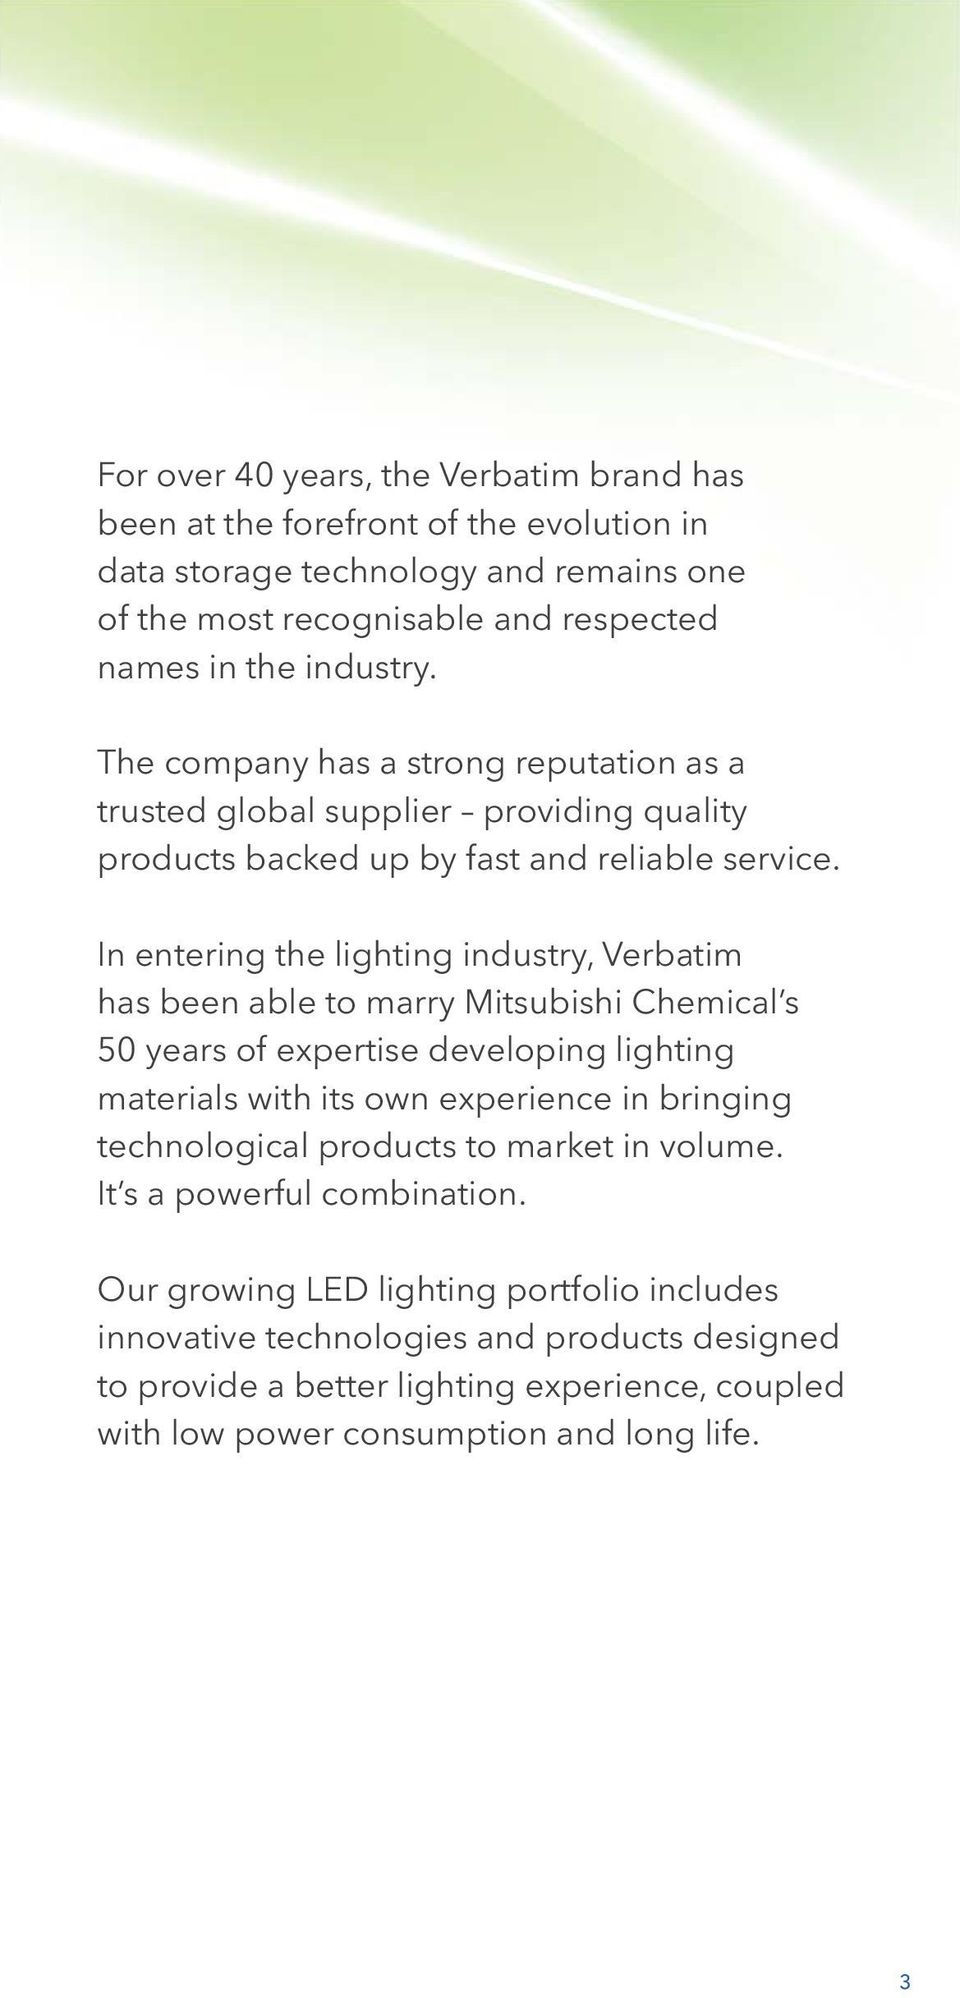 In entering the lighting industry, Verbatim has been able to marry Mitsubishi Chemical s 50 years of expertise developing lighting materials with its own experience in bringing